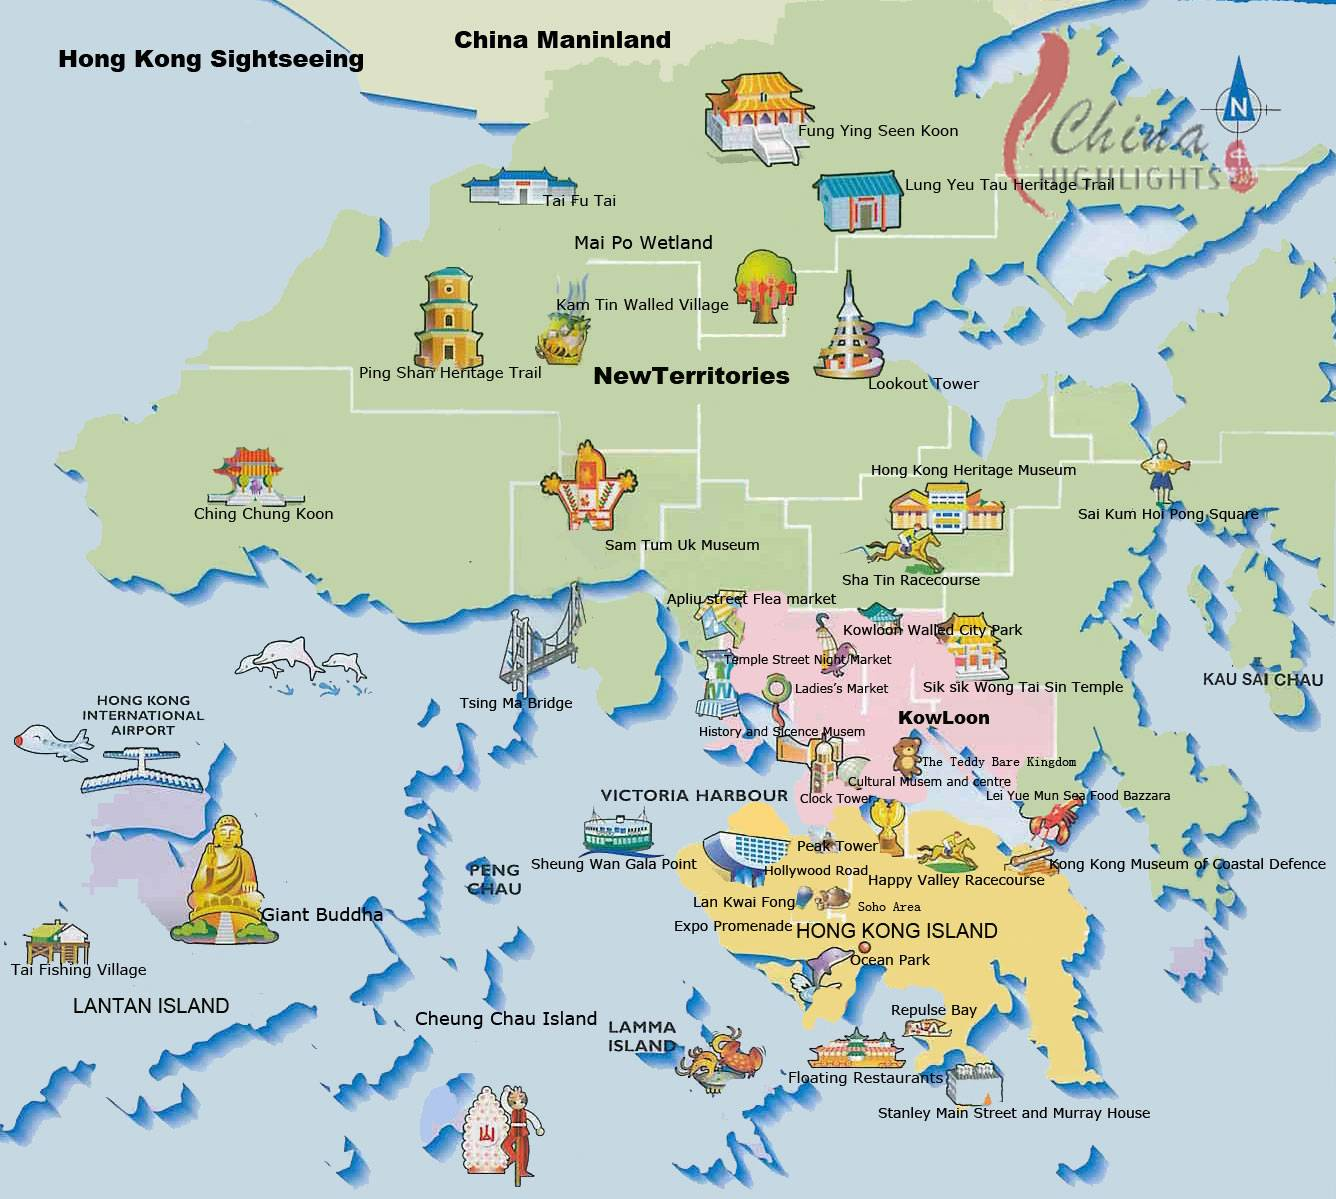 Large hong kong city maps for free download and print high large map of hong kong city 1 gumiabroncs Choice Image